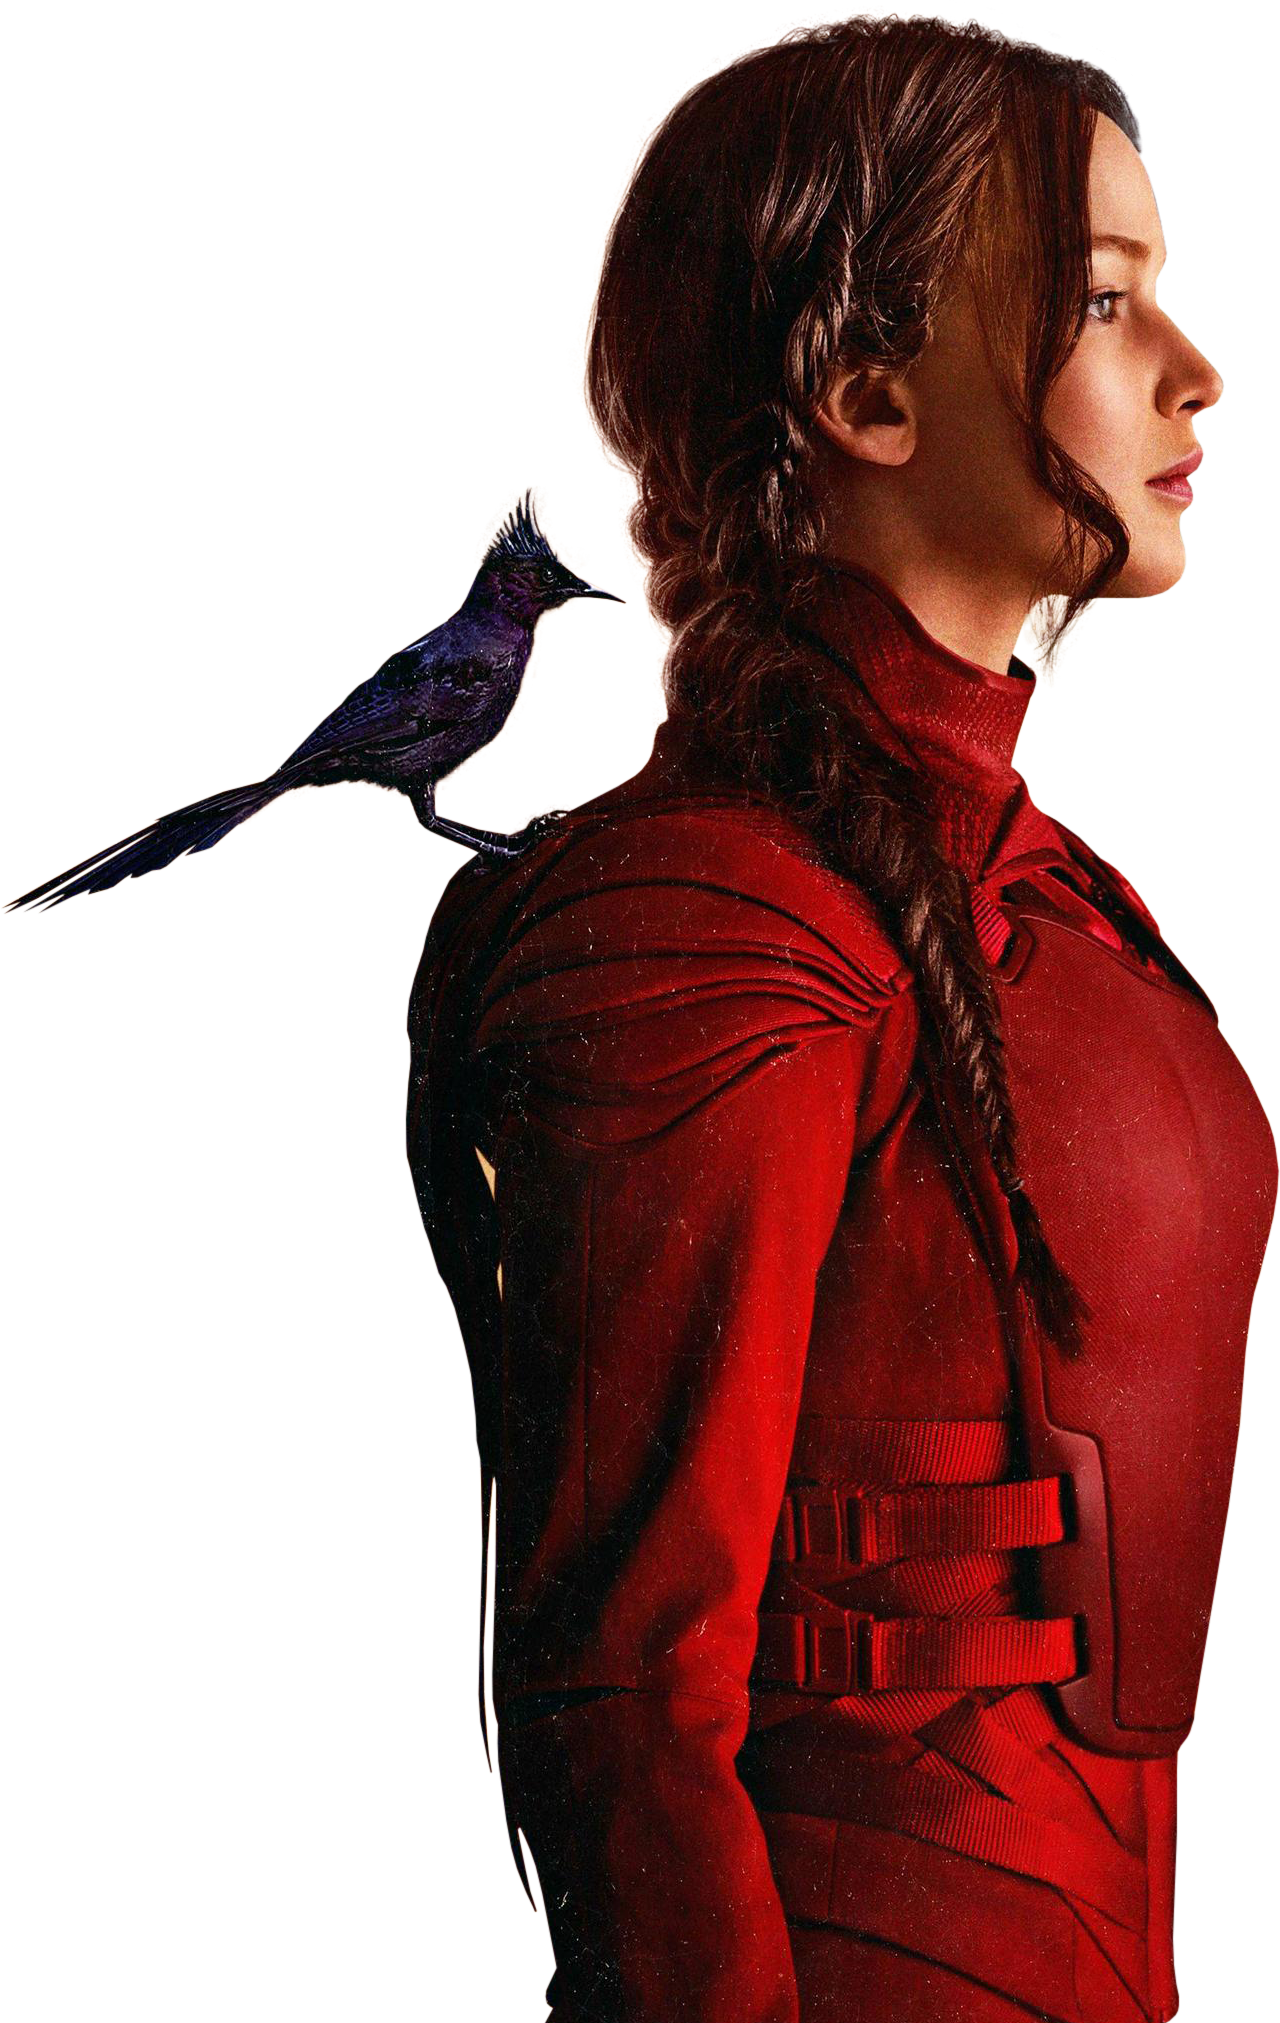 The Hunger Games Transparent Background-The Hunger Games Transparent Background-16